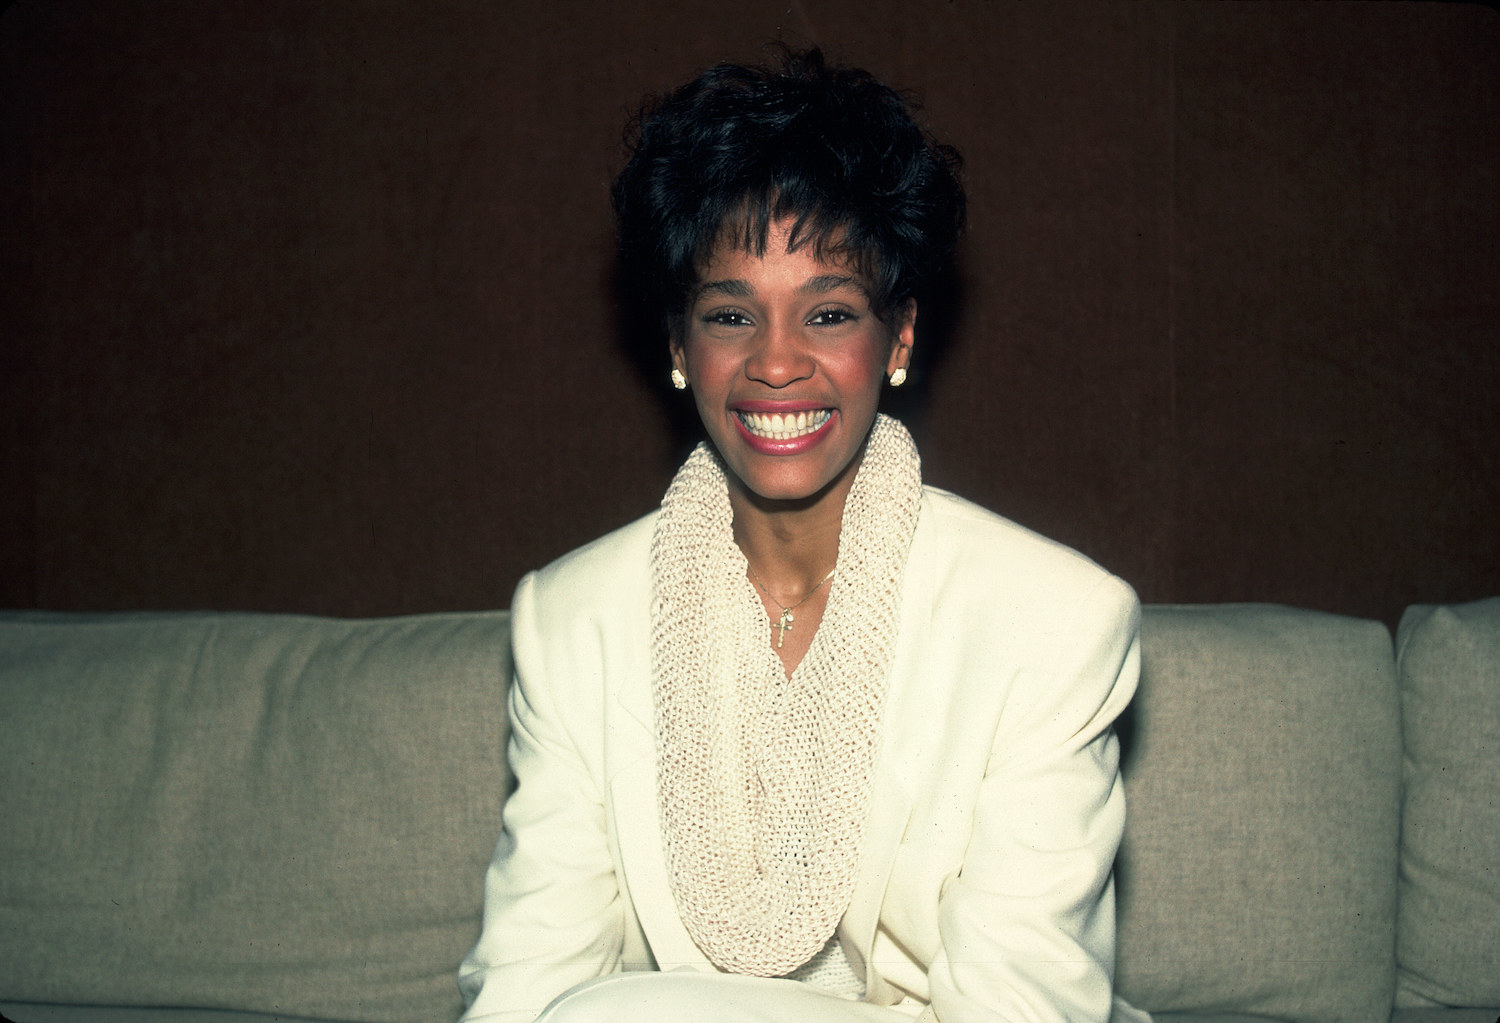 Whitney Houston at the Chicago Recording Company in Chicago, Illinois., February 20, 1985